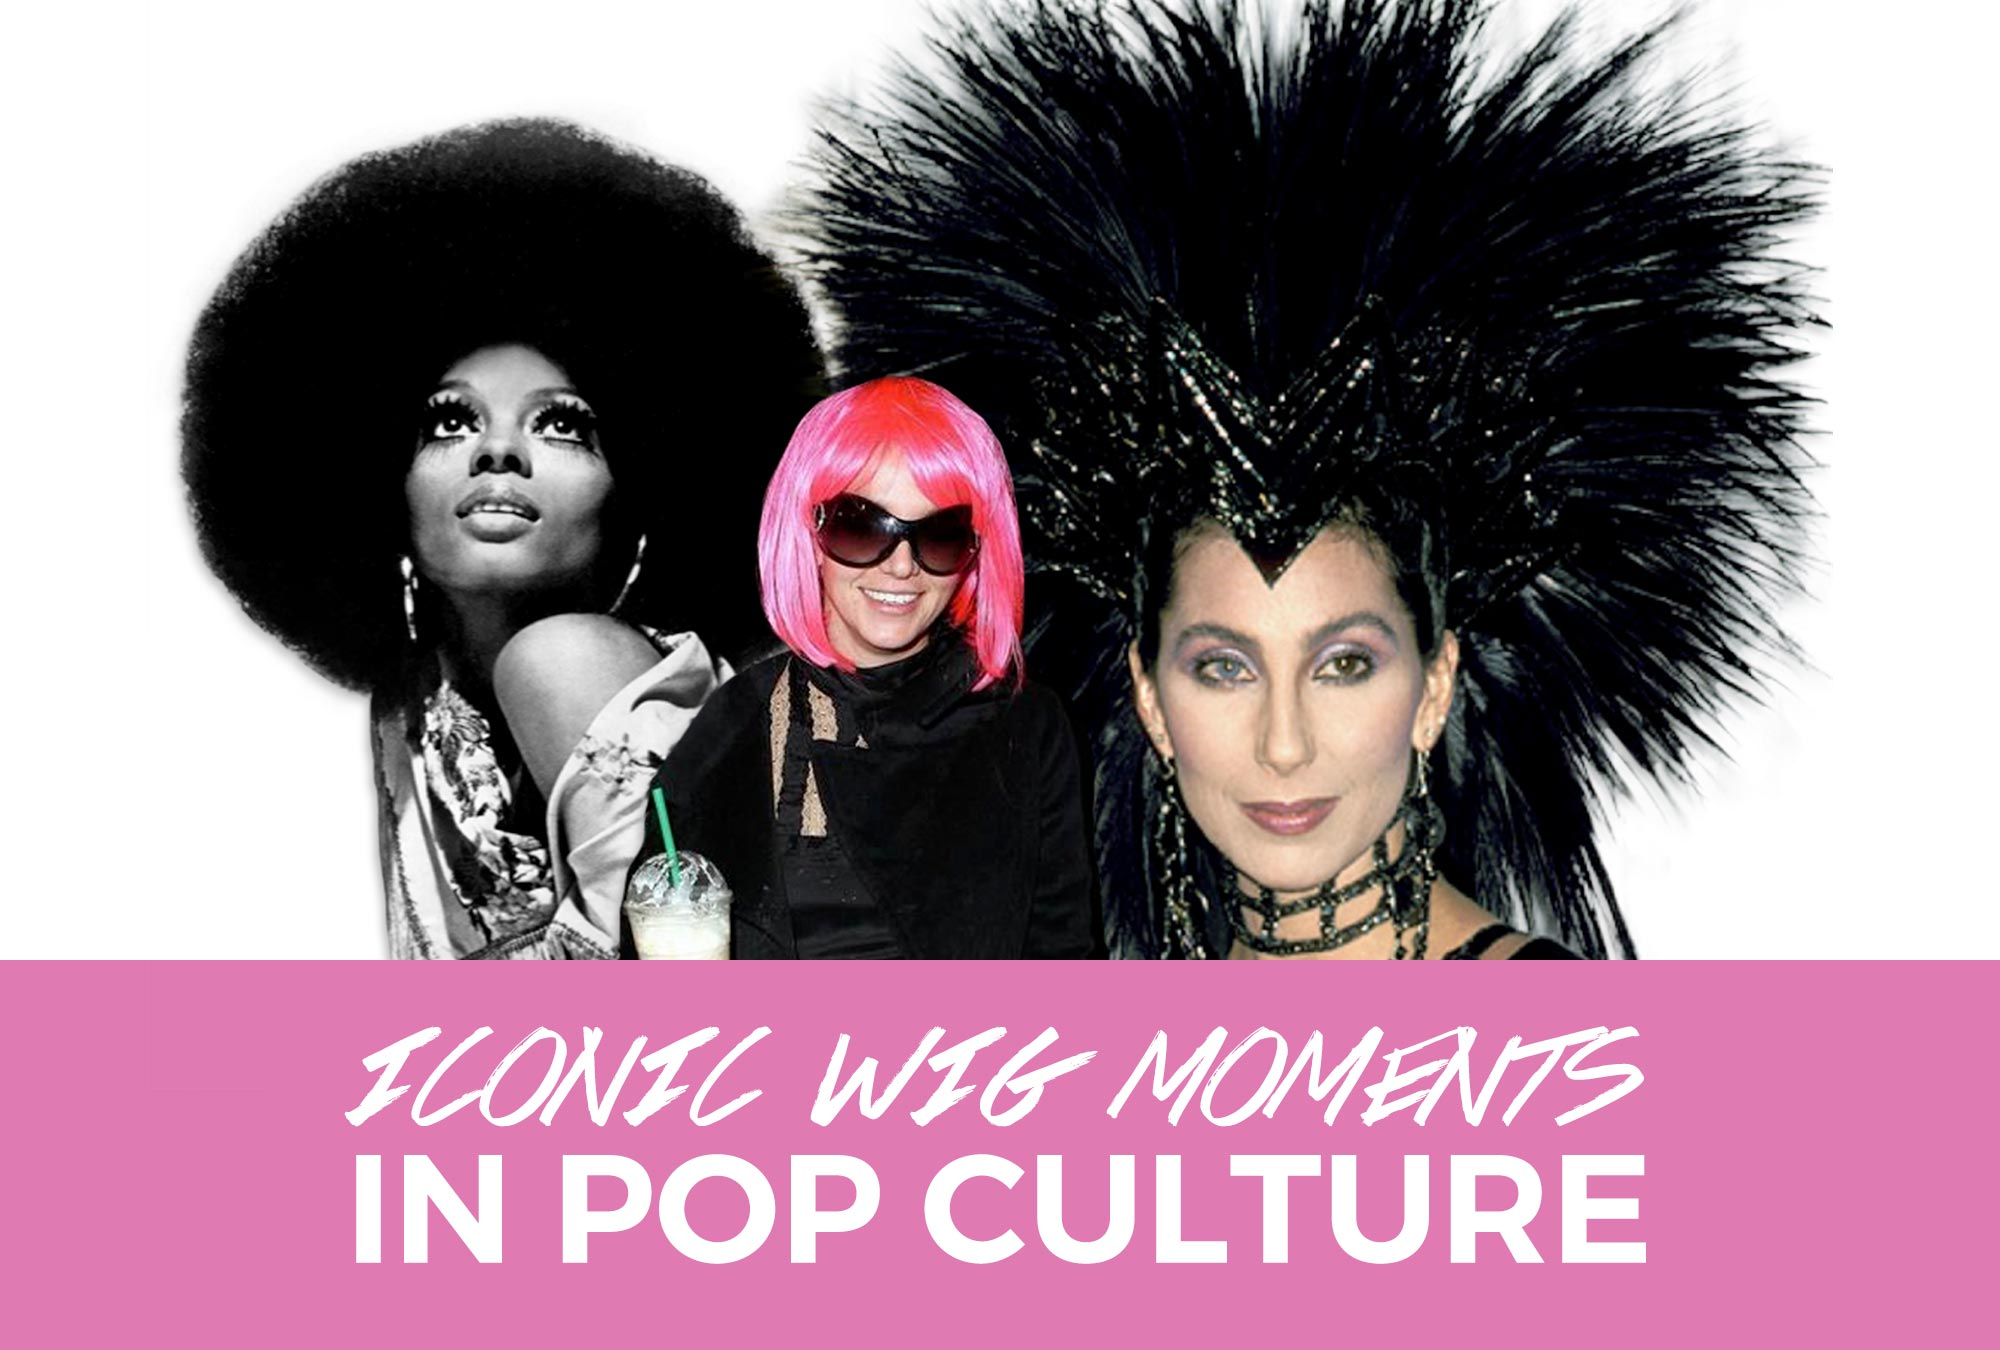 7 Iconic Wig Moments in Pop Culture